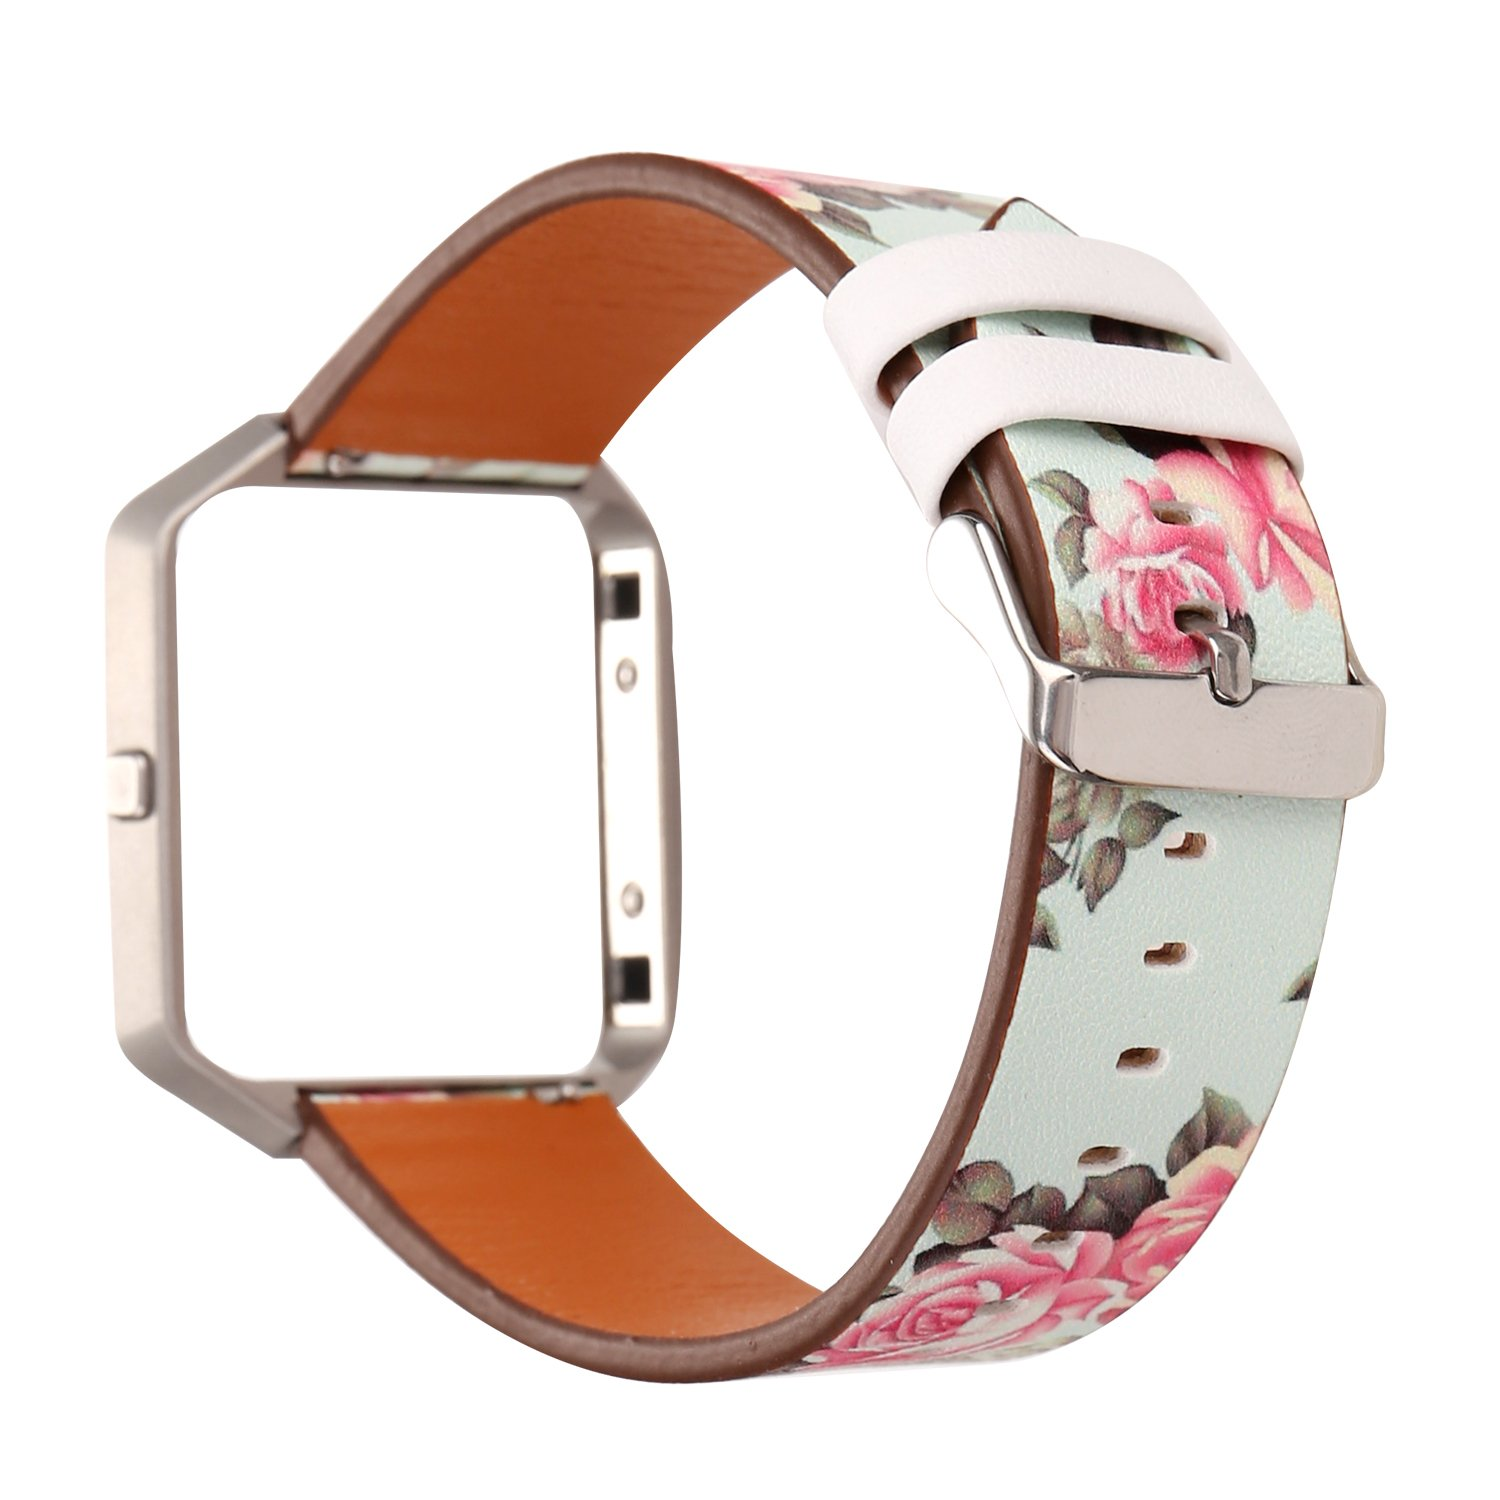 MeShow TCSHOW Soft PU Leather Pastoral/Rural Floral Style Replacement Strap Wrist Band Silver Metal Adapter Compatible Fitbit Blaze (Q)